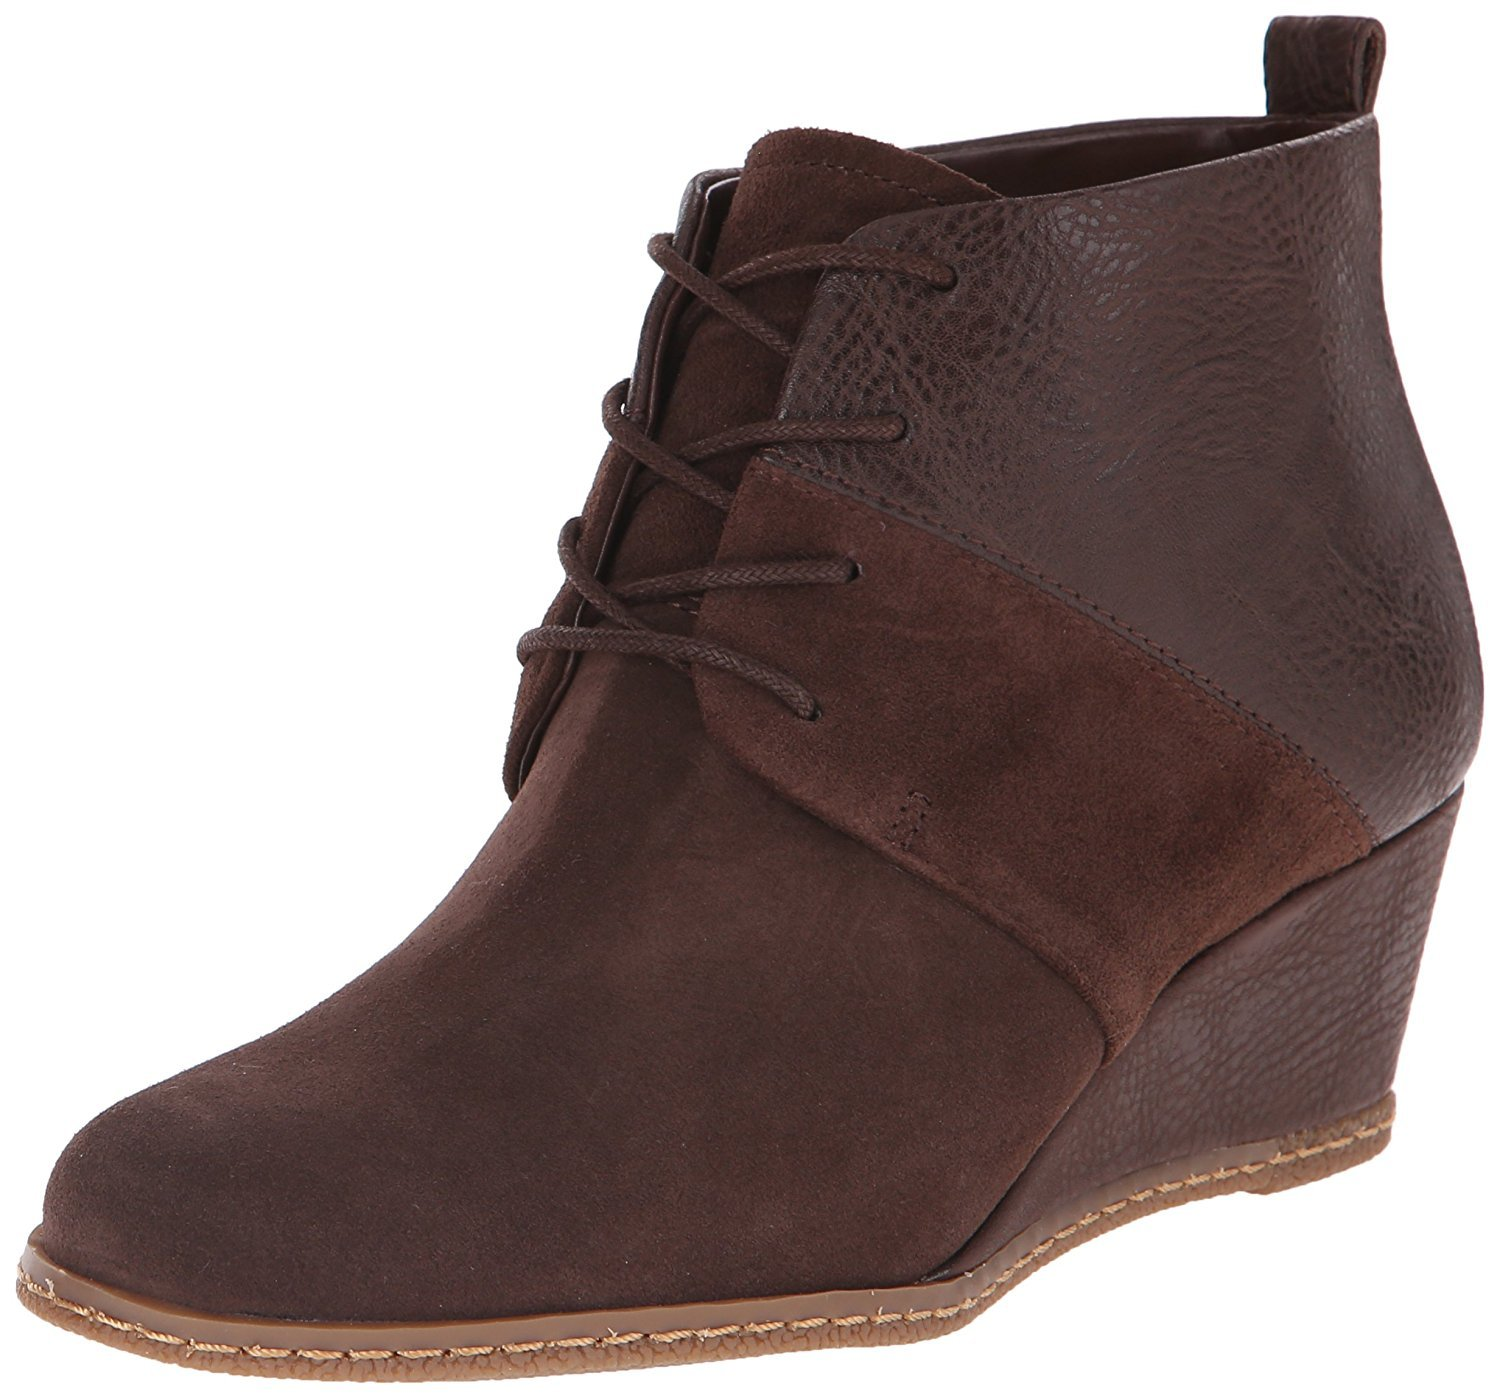 Franco Sarto Women's Albi Boot (5.5 B(M) US, Chocolate) by Caleres Inc